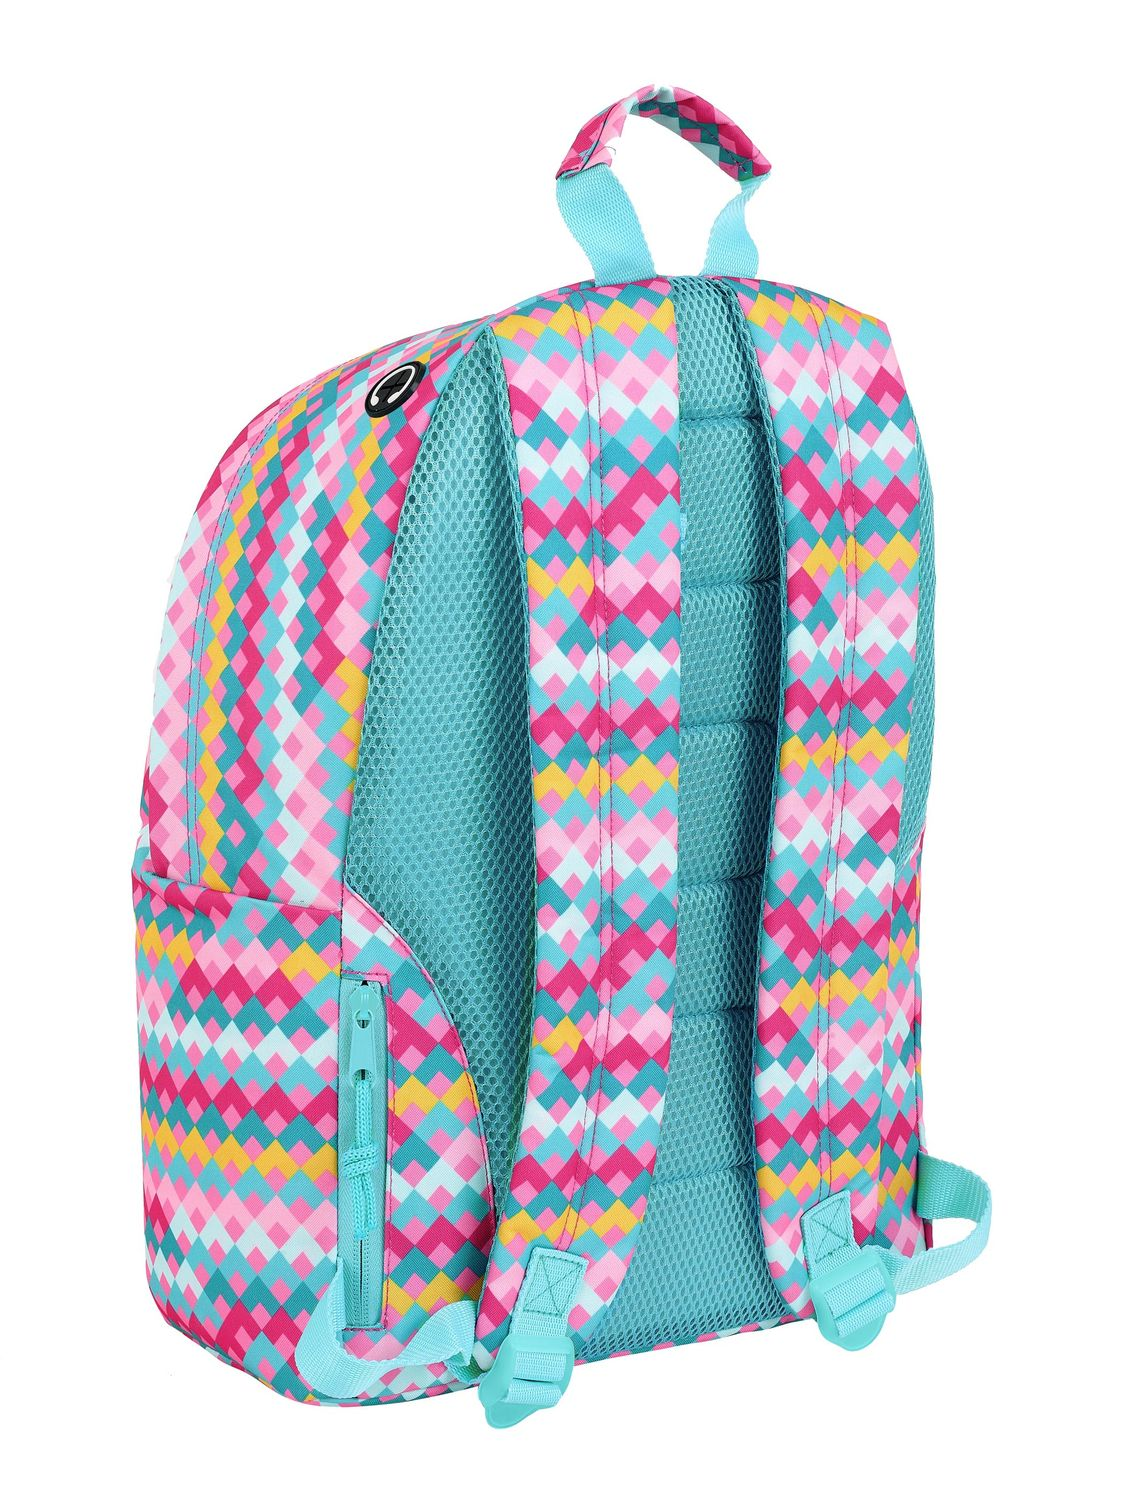 "BENETTON ZIGZAG Laptop Backpack 14,1"" 41 cm – image 3"